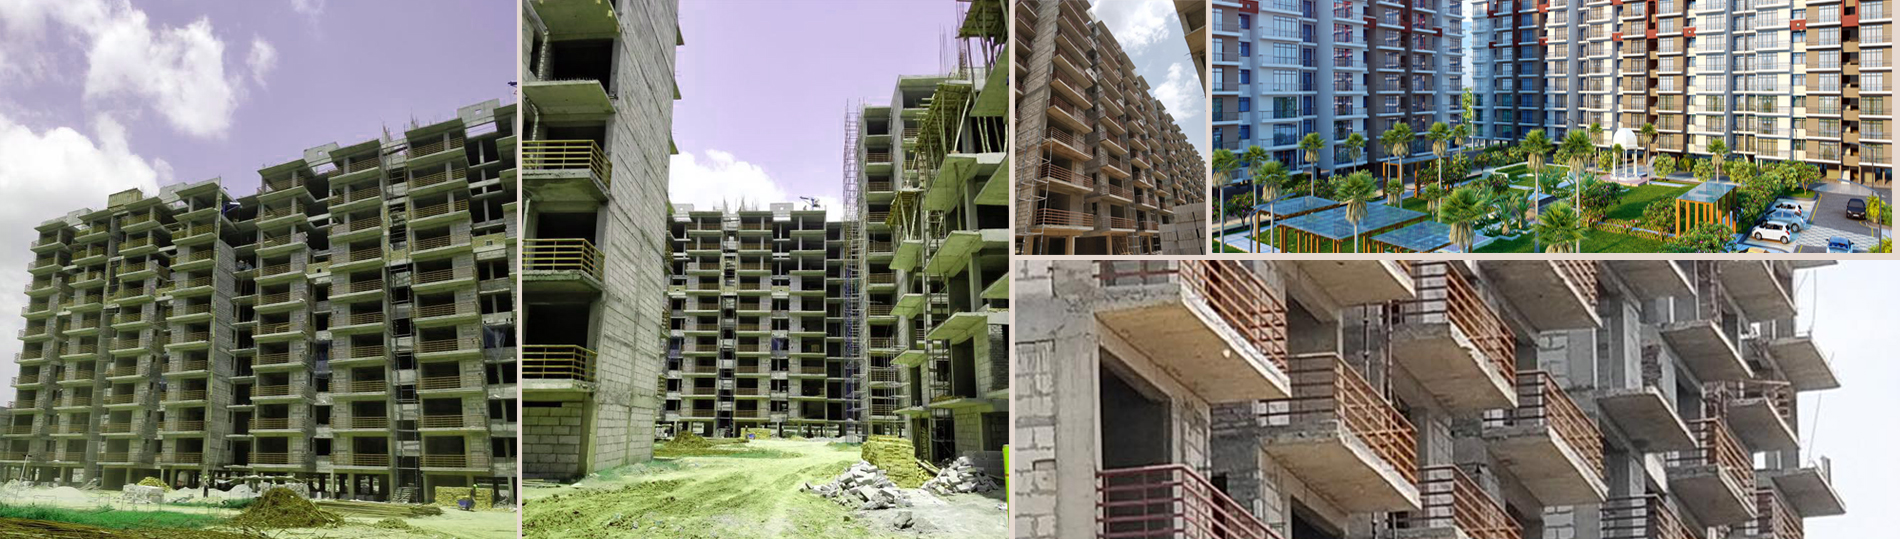 Global Heights Sohna Construction Image